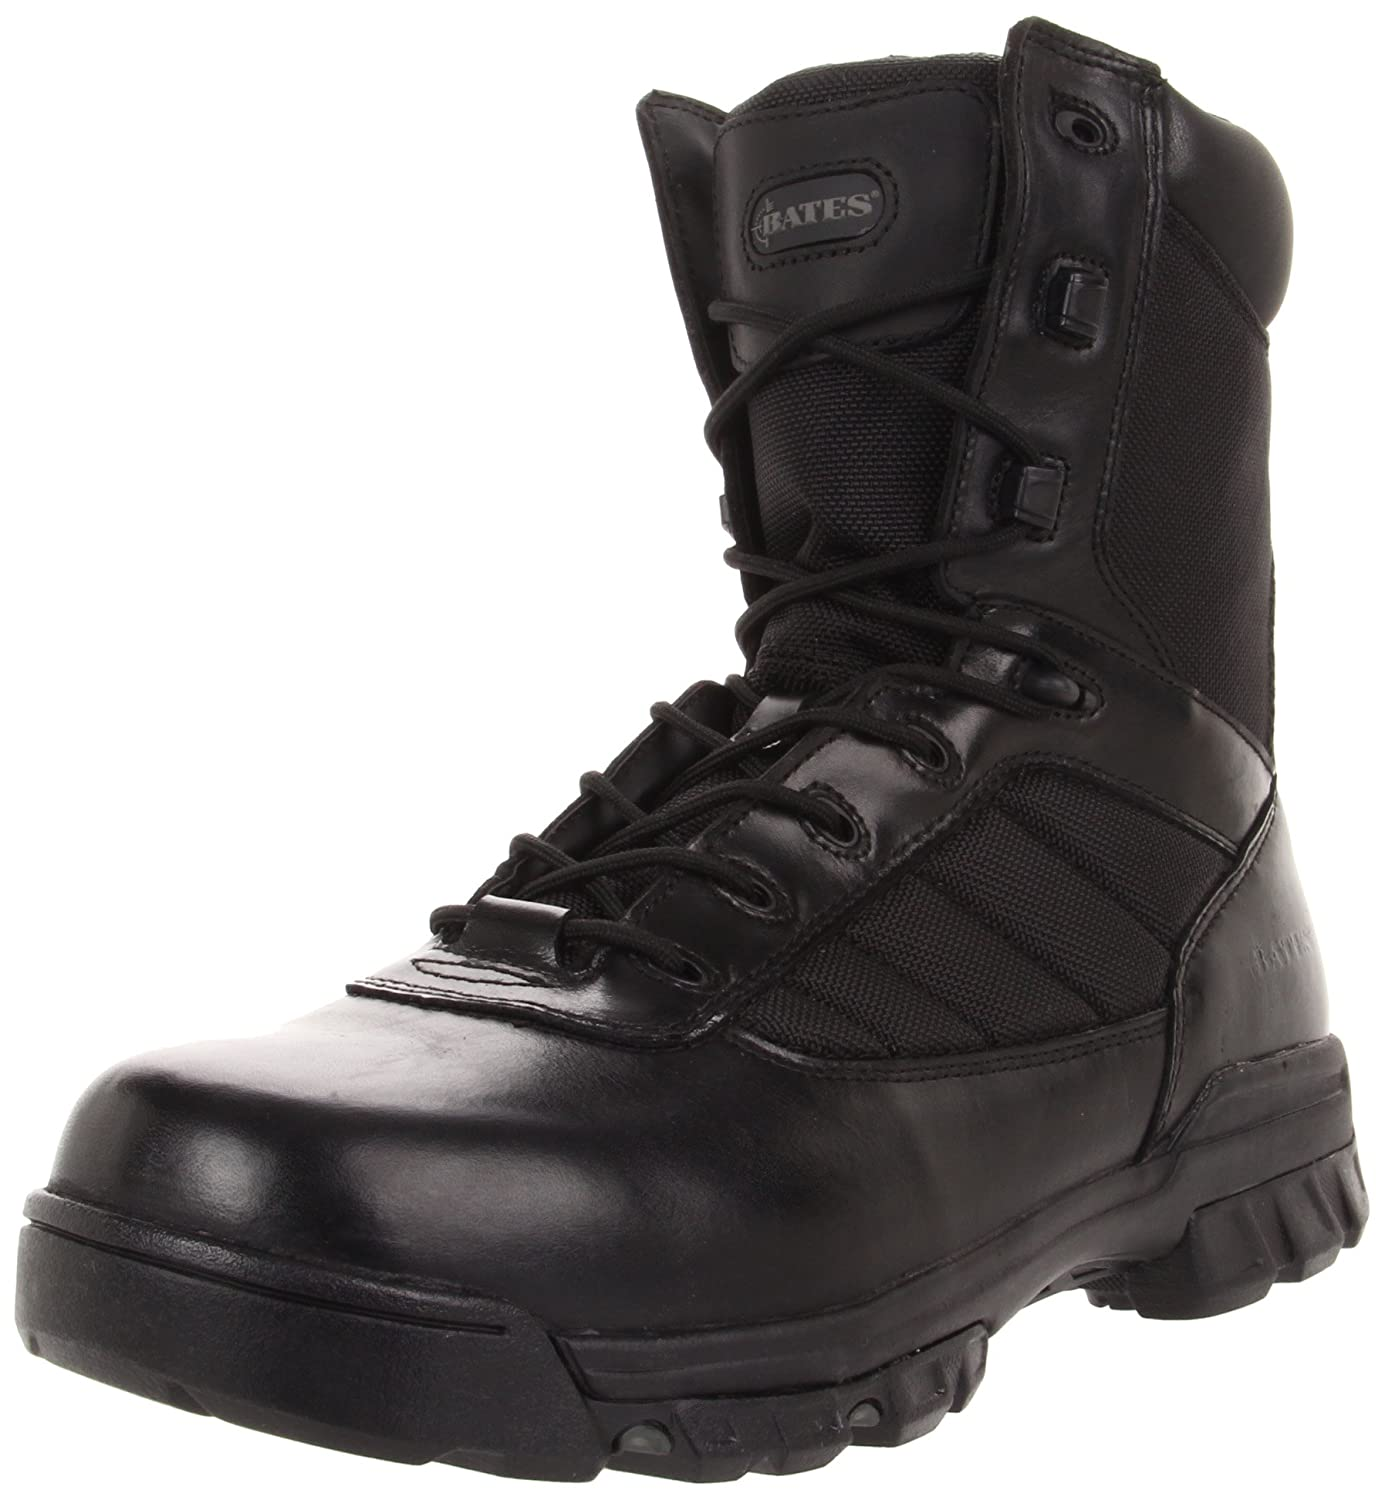 Bates Men's UltraLites 8 Inches Tactical Sport SideZip Boot